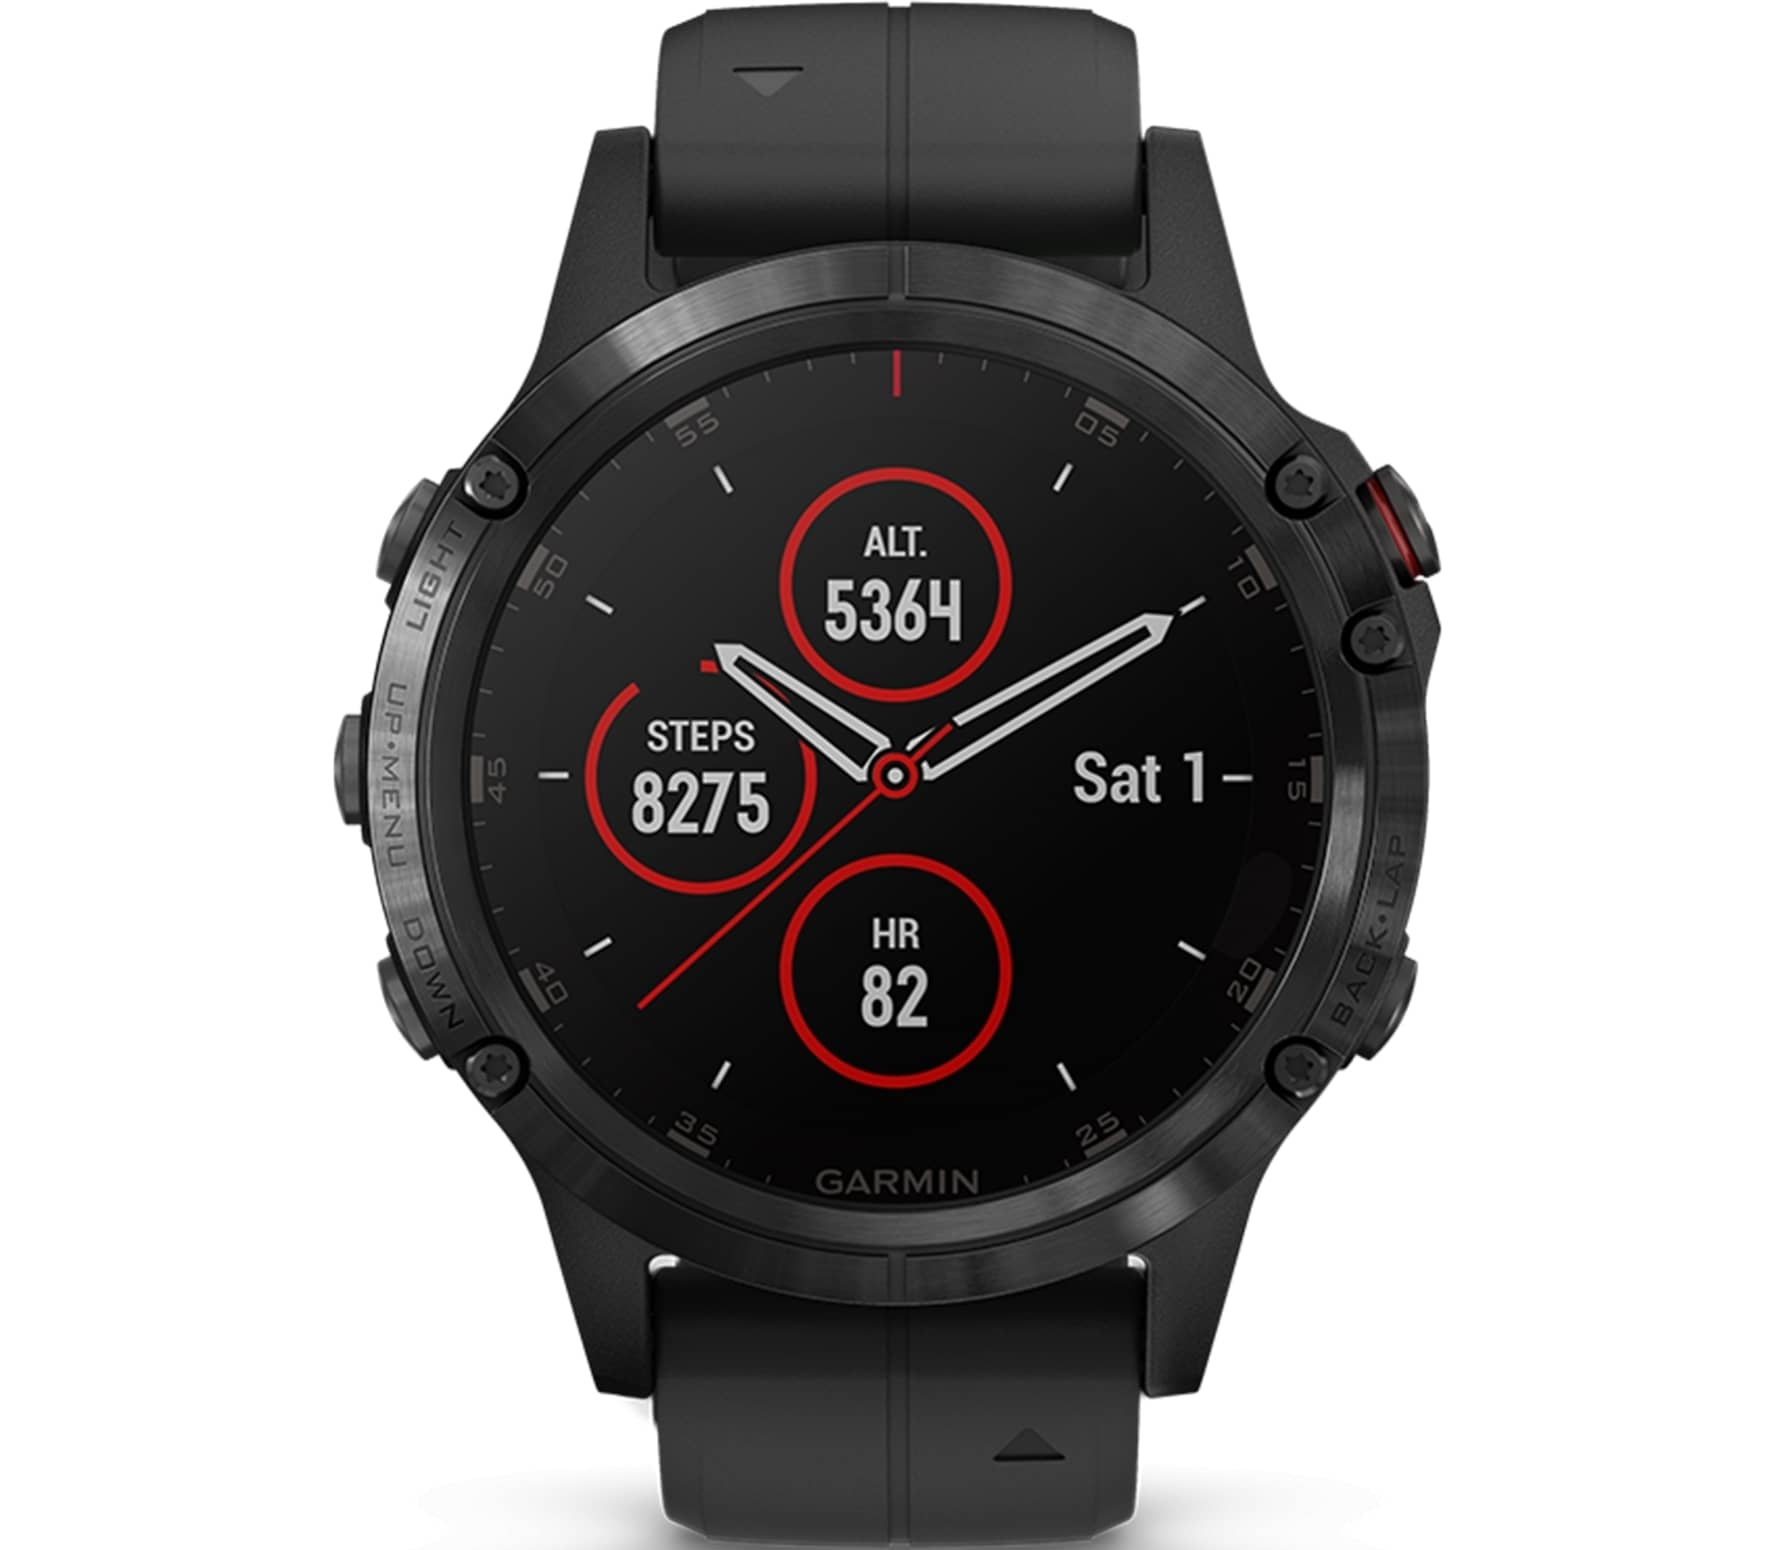 Garmin - Fenix 5 Plus Saphir Edition multisports watch (black)